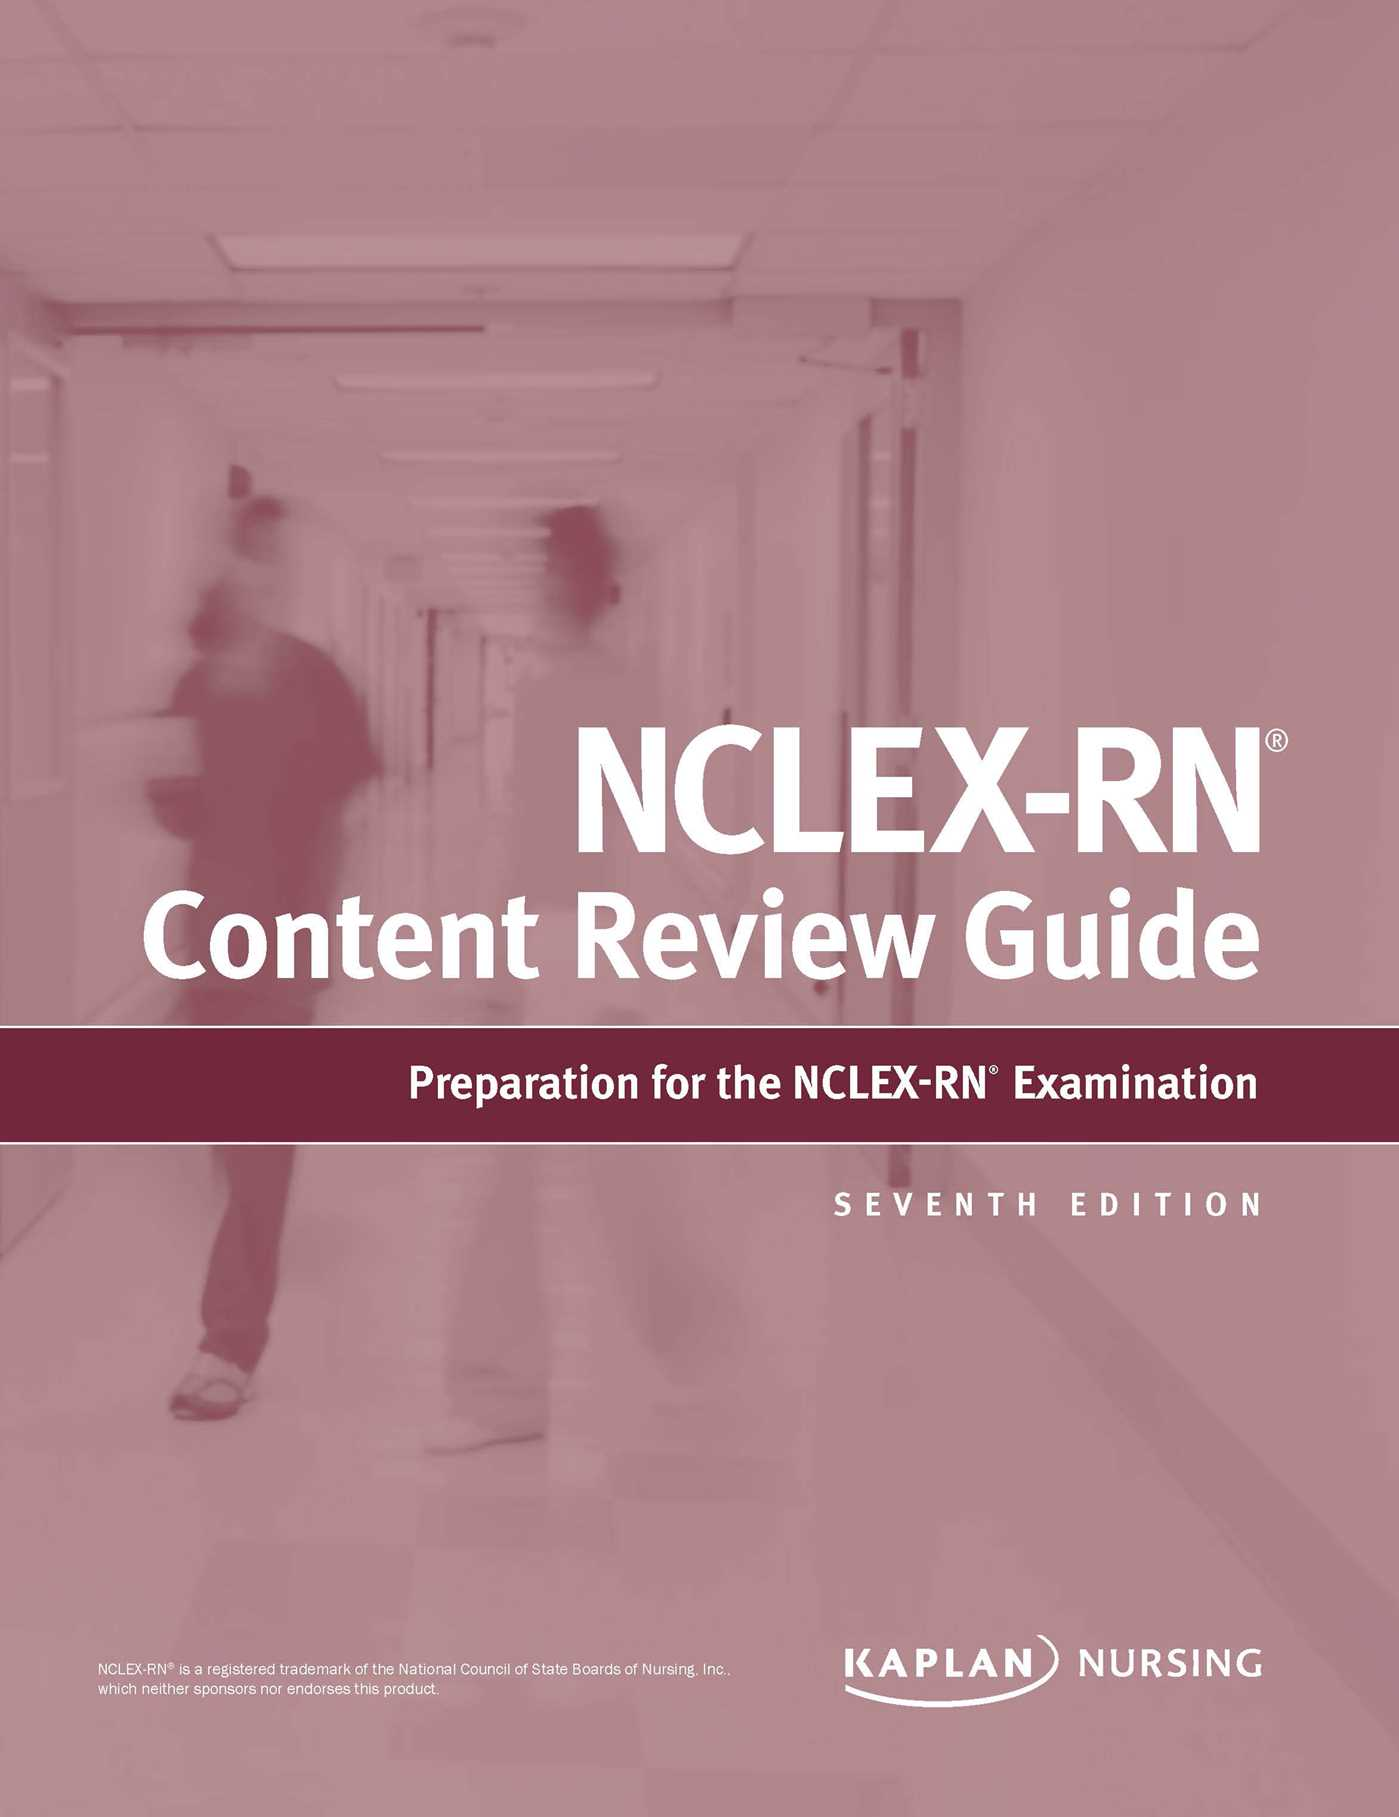 Nclex rn content review guide 9781506245515 hr